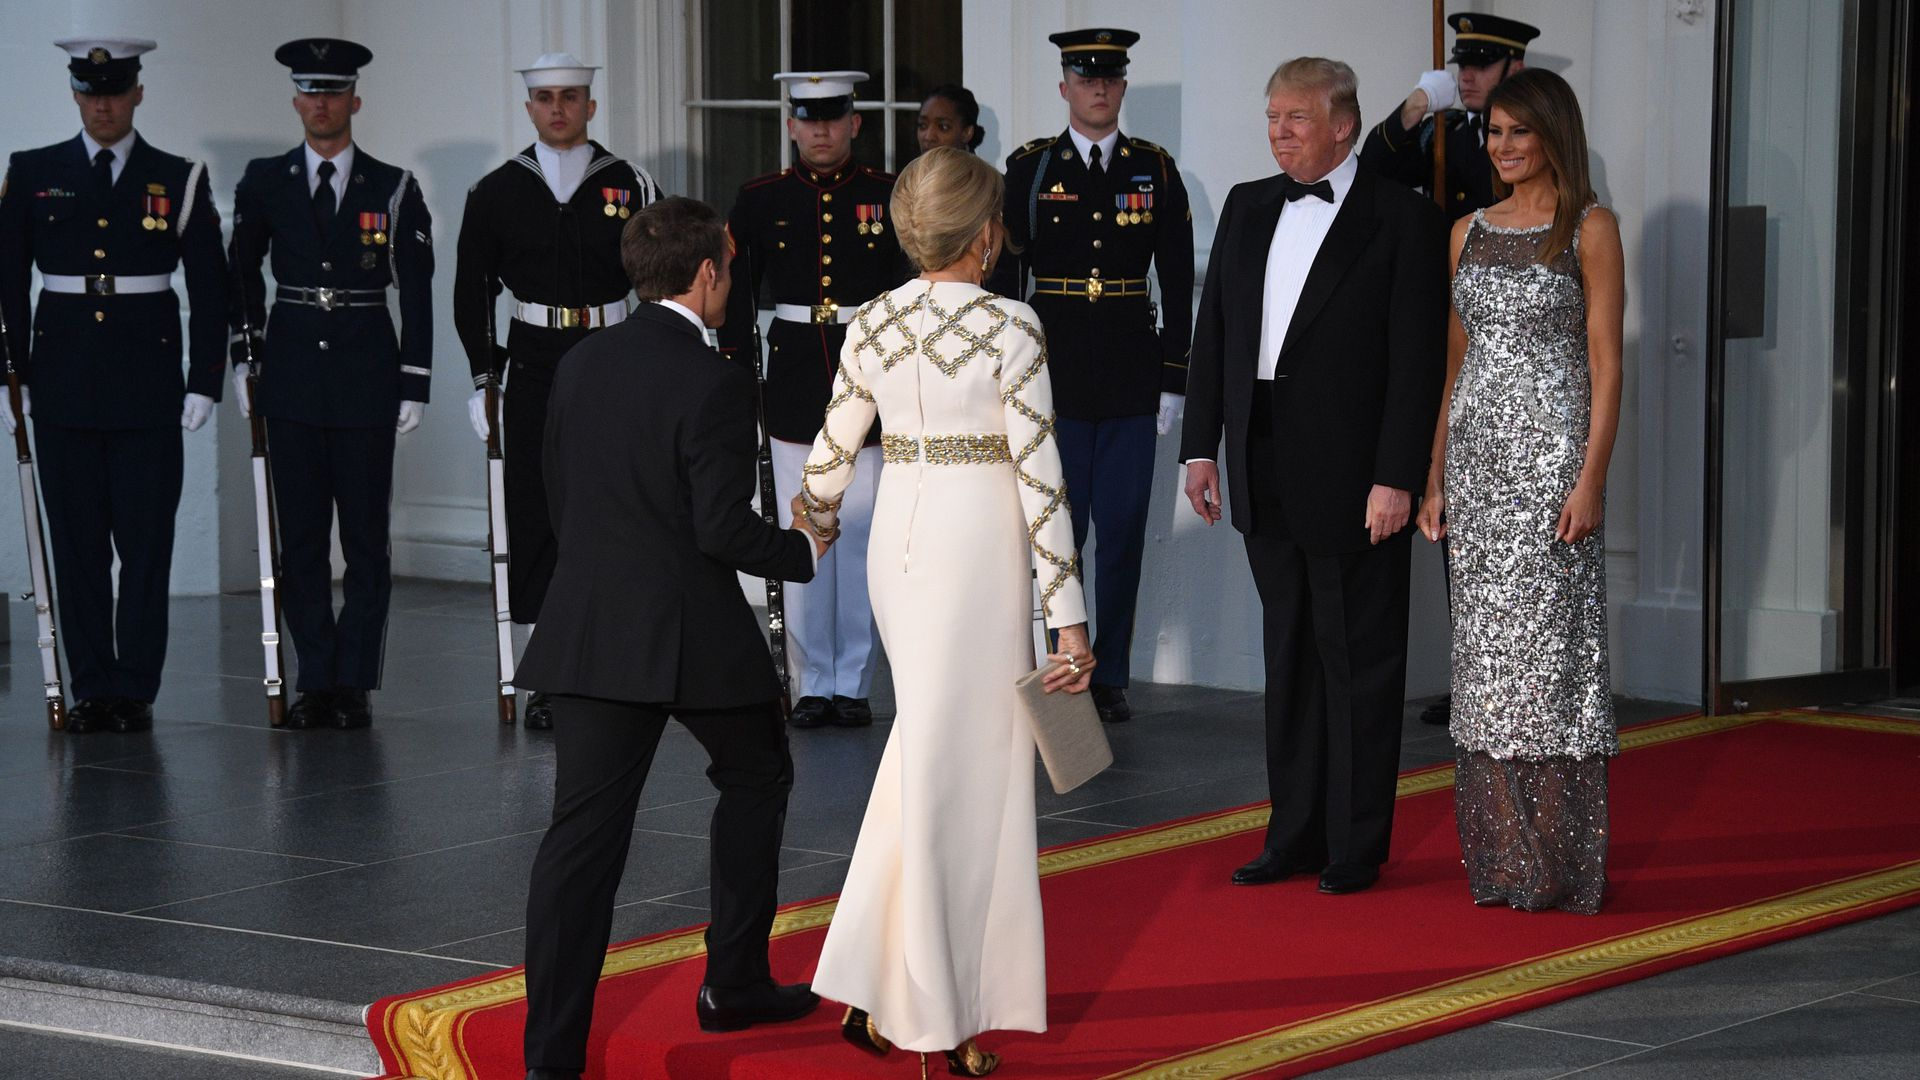 US President Donald Trump and First Lady Melania Trump welcome French President Emmanuel Macron and his wife, Brigitte Macron arriving at the White House.